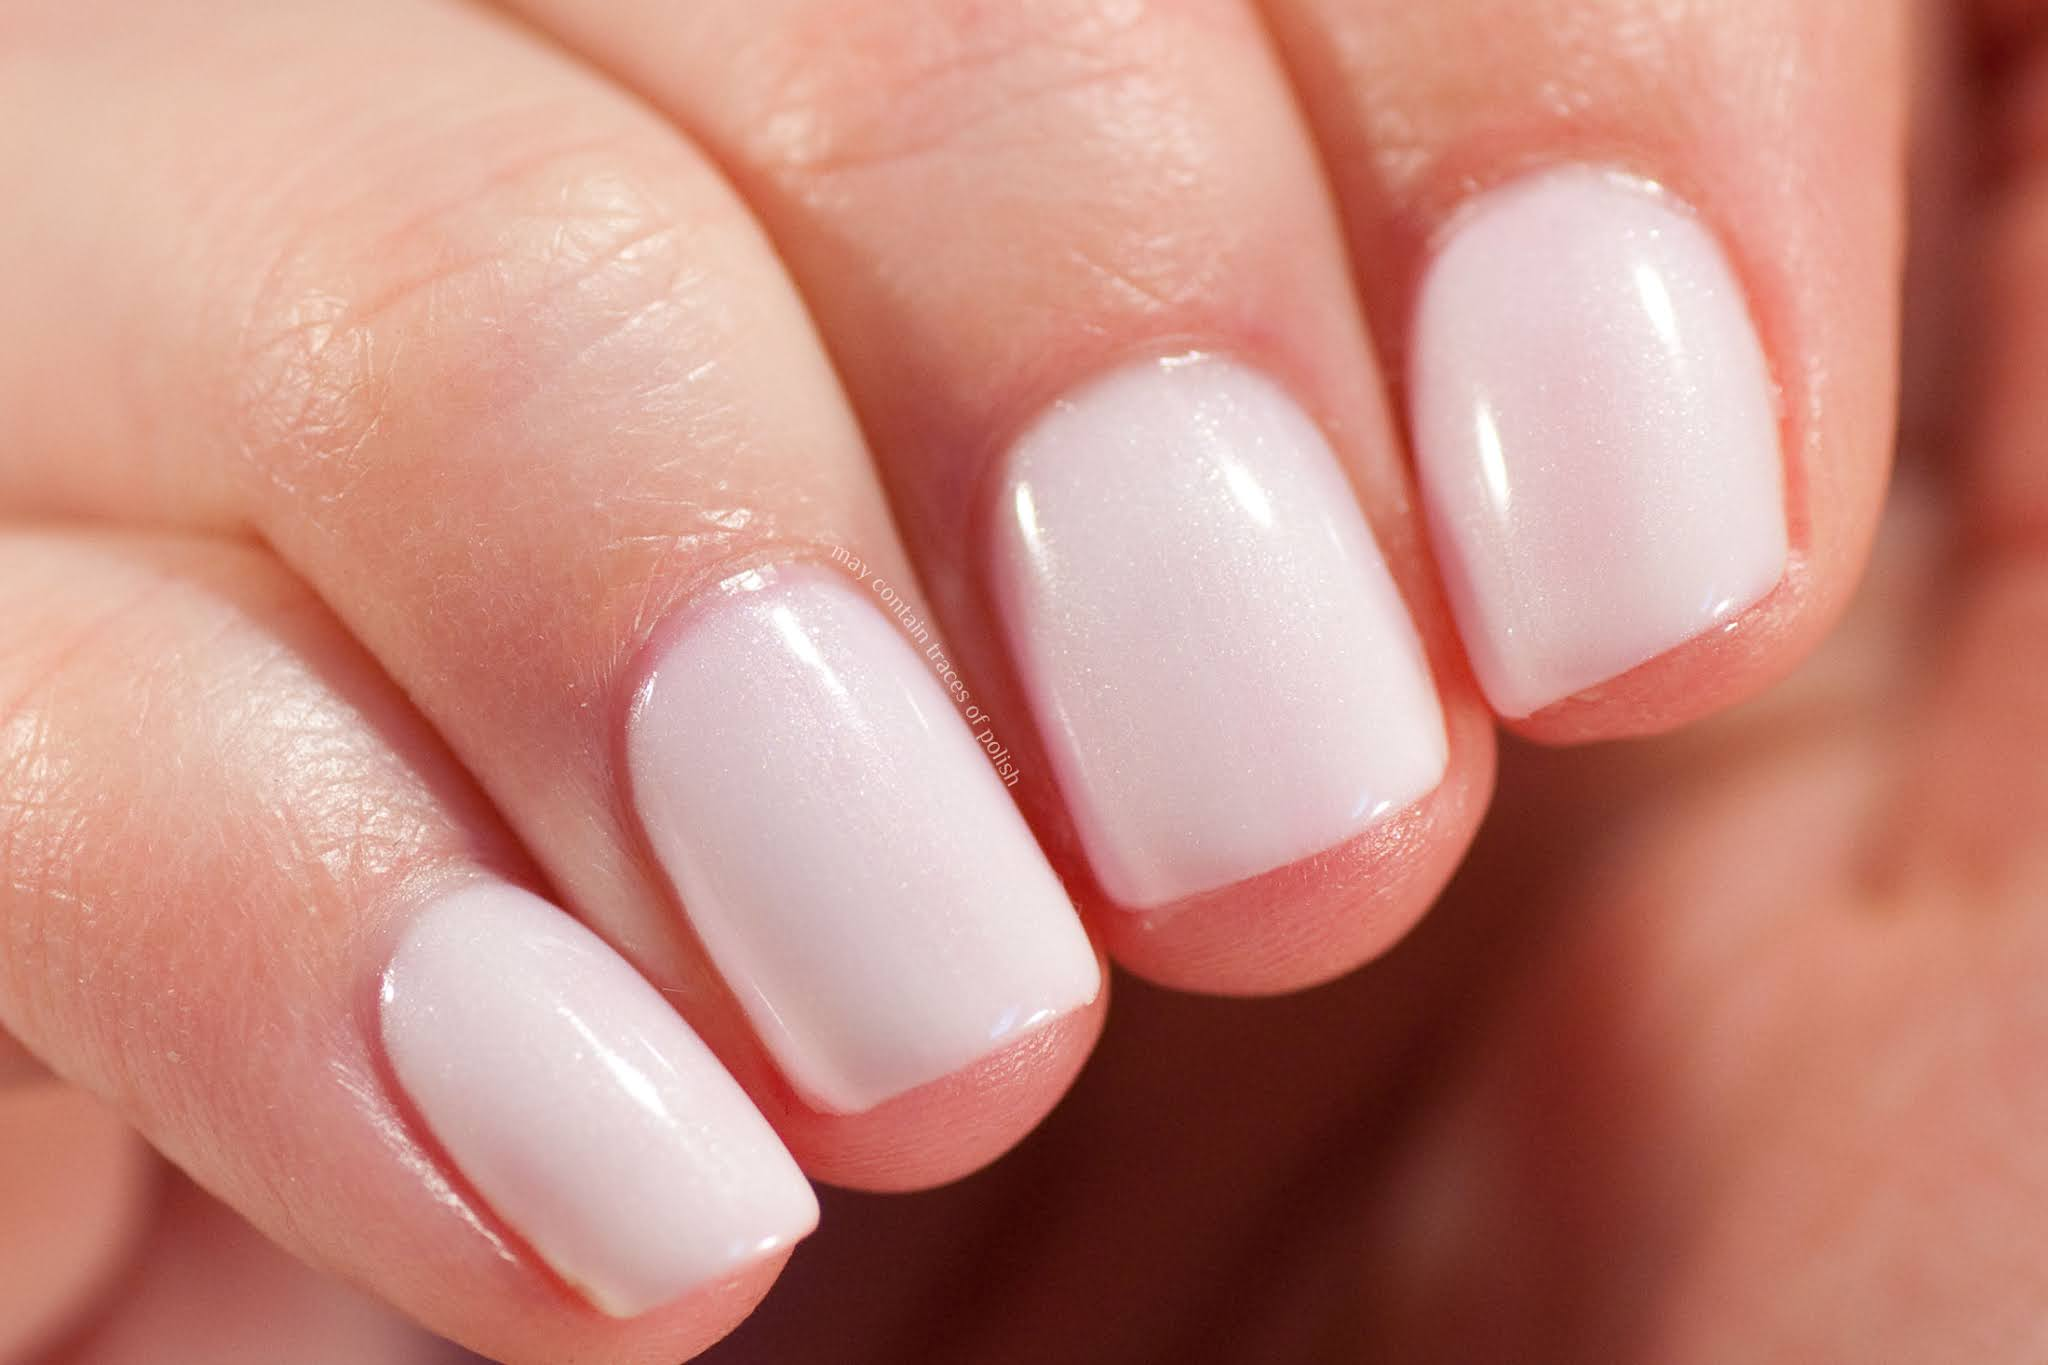 Pink Gellac Swatches - 209 Sugar White